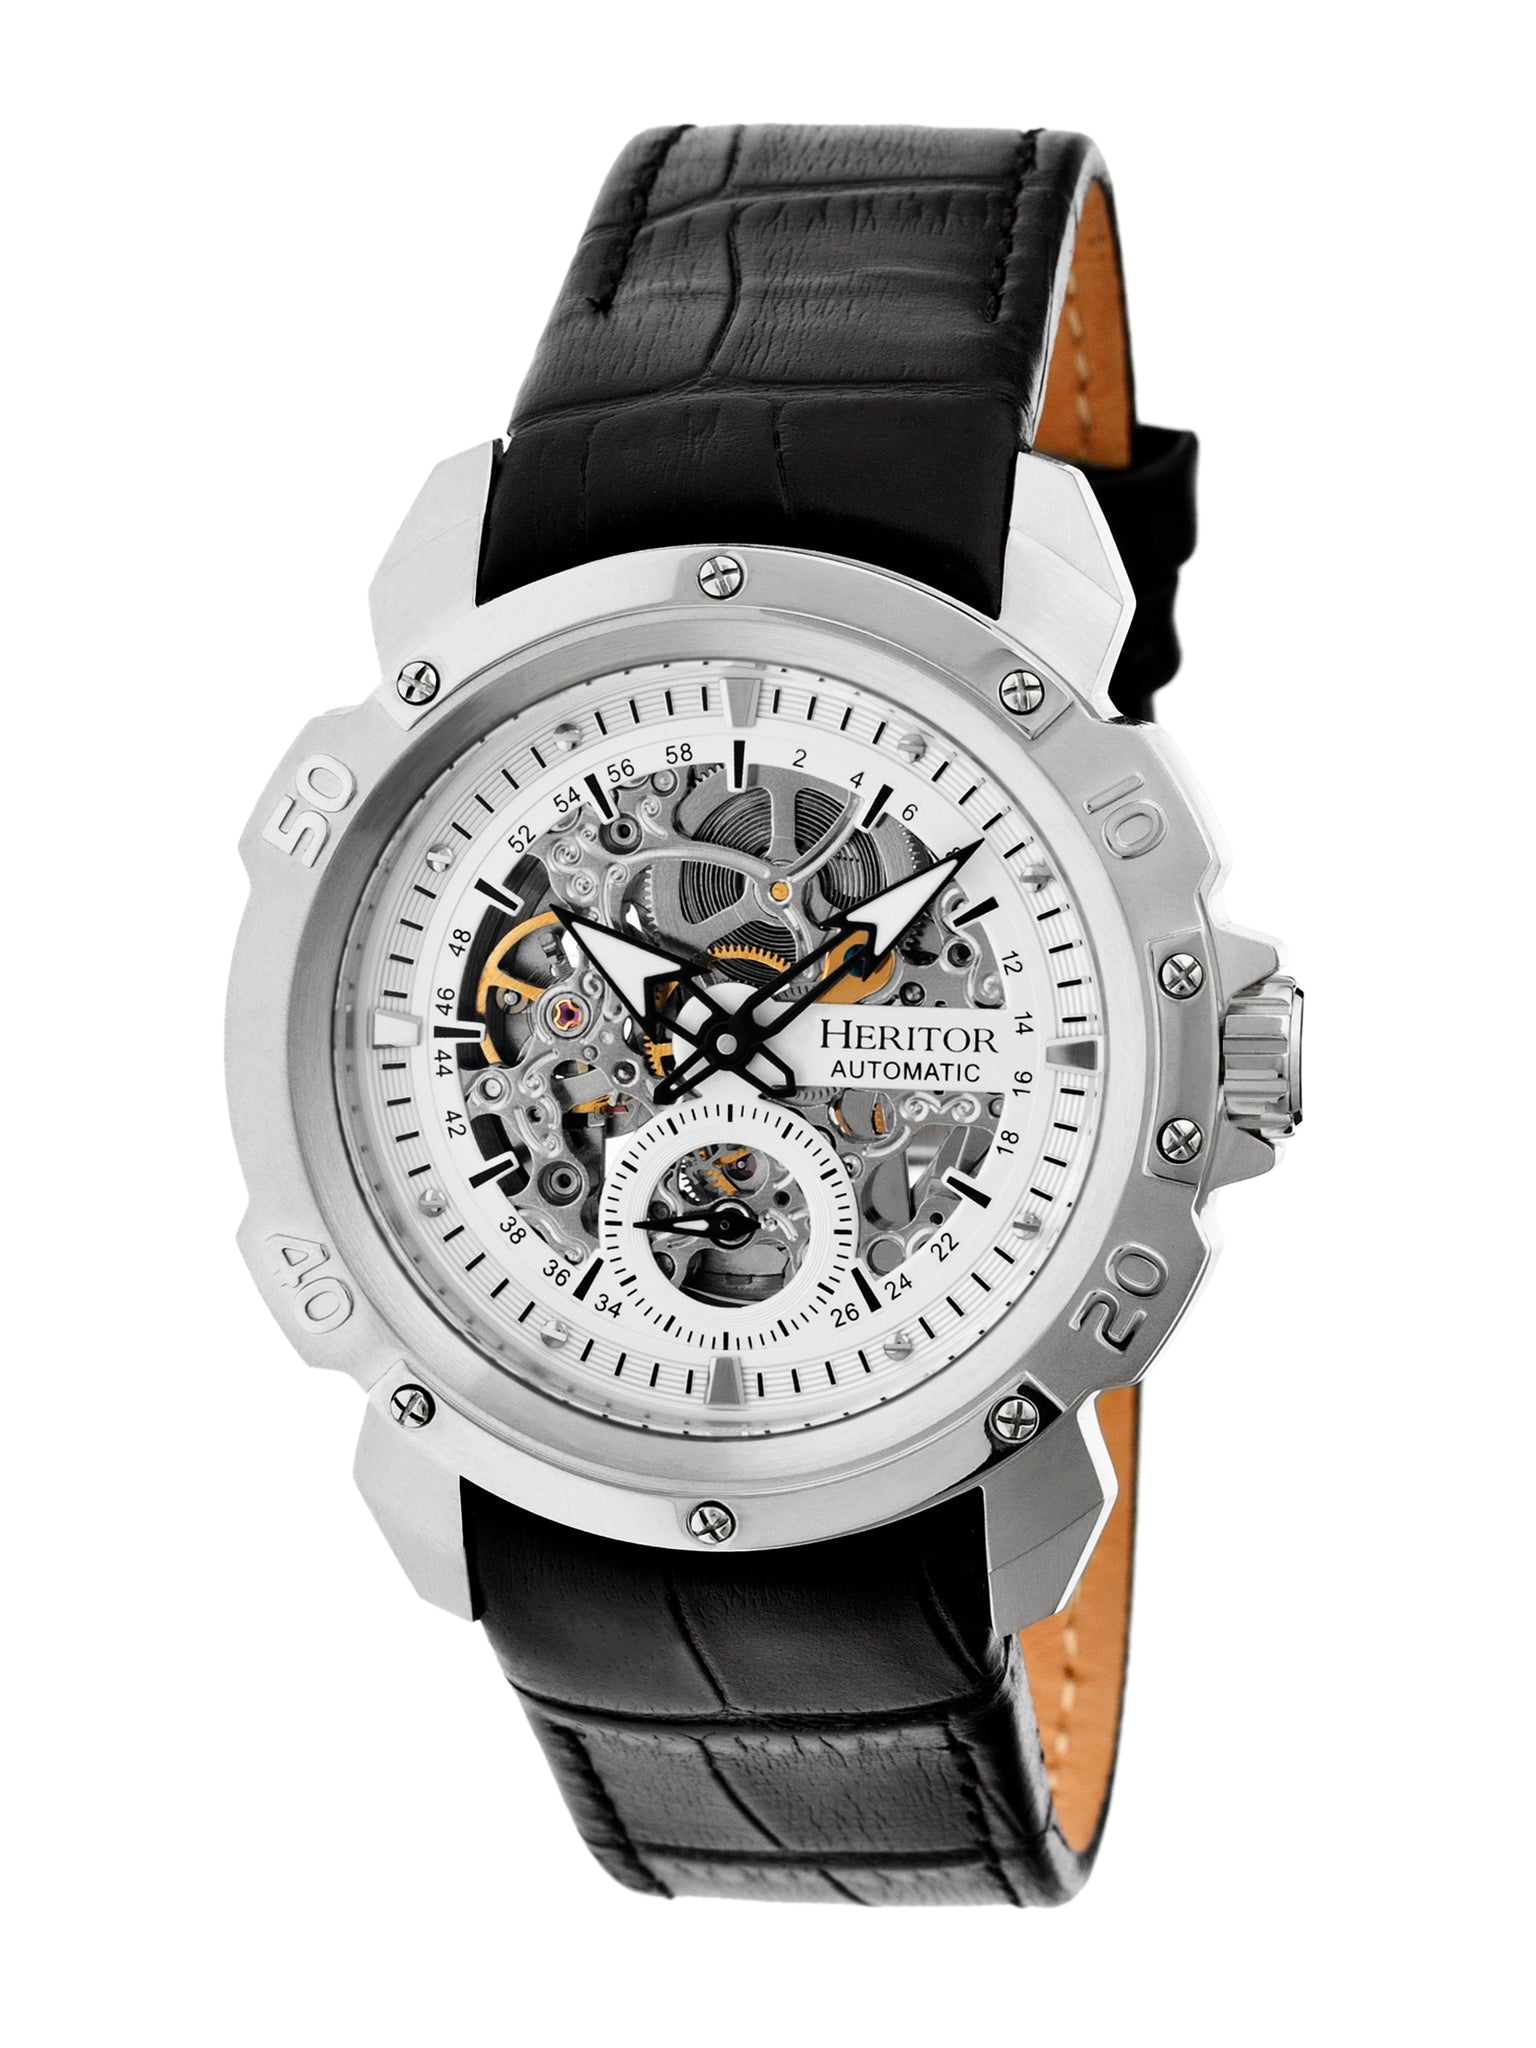 "Heritor Automatic ""Carter"" Men's Skeleton Dial Watches - Use Code Heritor120 for $120 Off!"